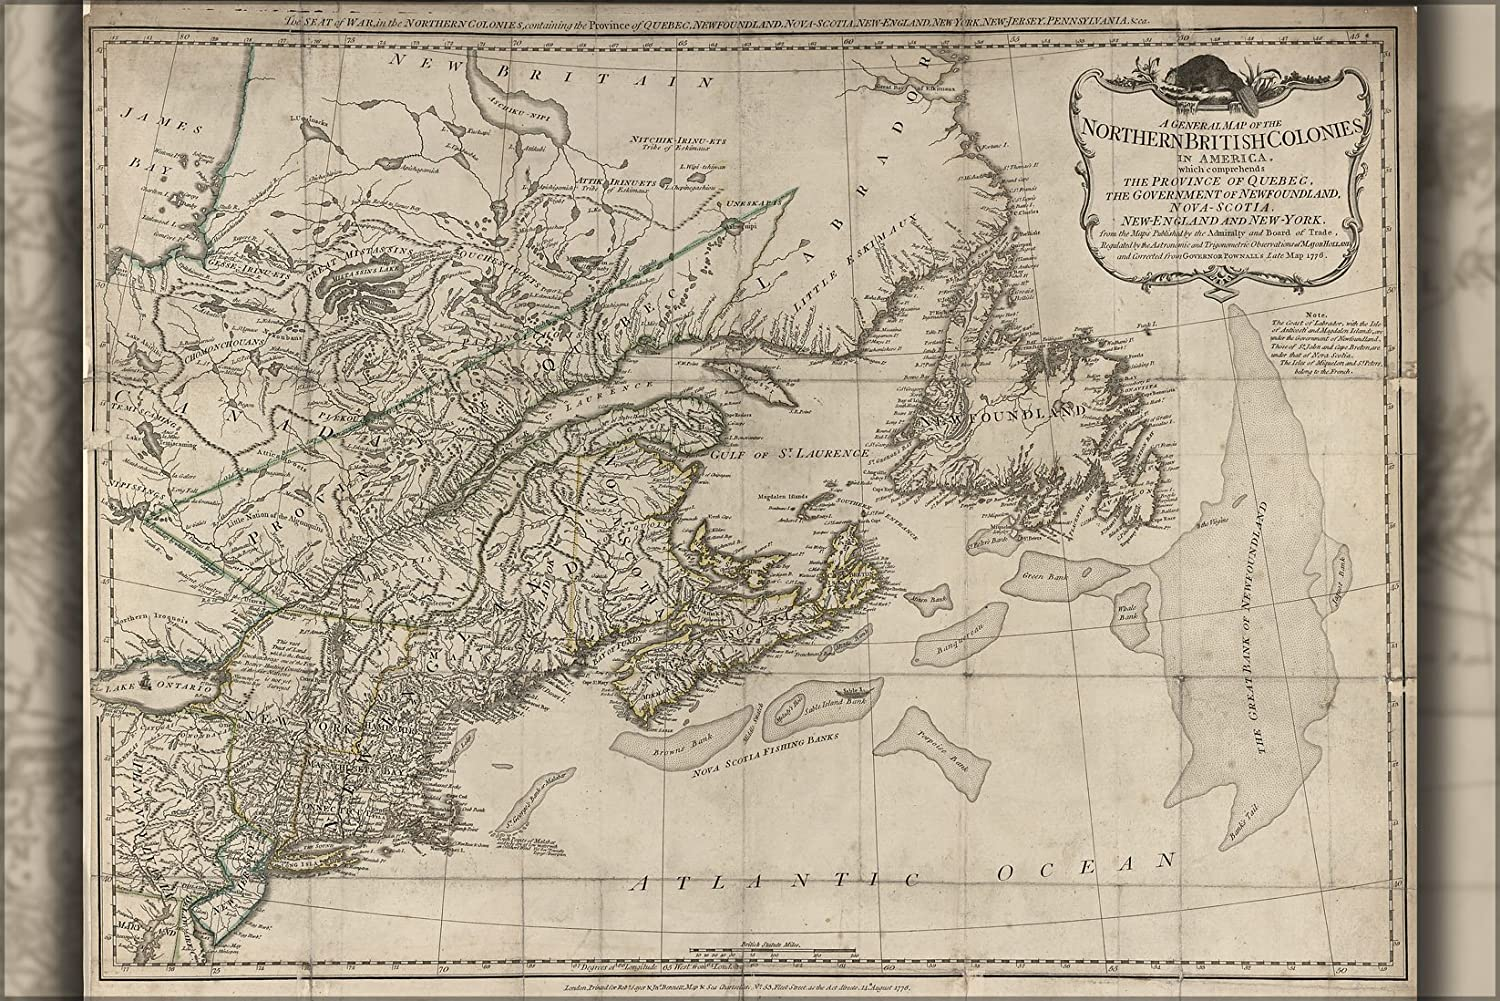 Amazon.com : 20x30 Poster; Map Of New England Machusetts ... on map of long island 1776, map of north america 1776, map of nantucket 1776, map of manhattan 1776, map of africa 1776, map of germany 1776, map of great britain 1776, map of american colonies 1776, map of mexico 1776, map of united states 1776, map of texas 1776, map of dorchester heights 1776, map of california 1776, map of massachusetts 1776, map of philadelphia 1776, map of alaska 1776, map of canada 1776, map of russia 1776, map of trenton 1776, map of virginia 1776,